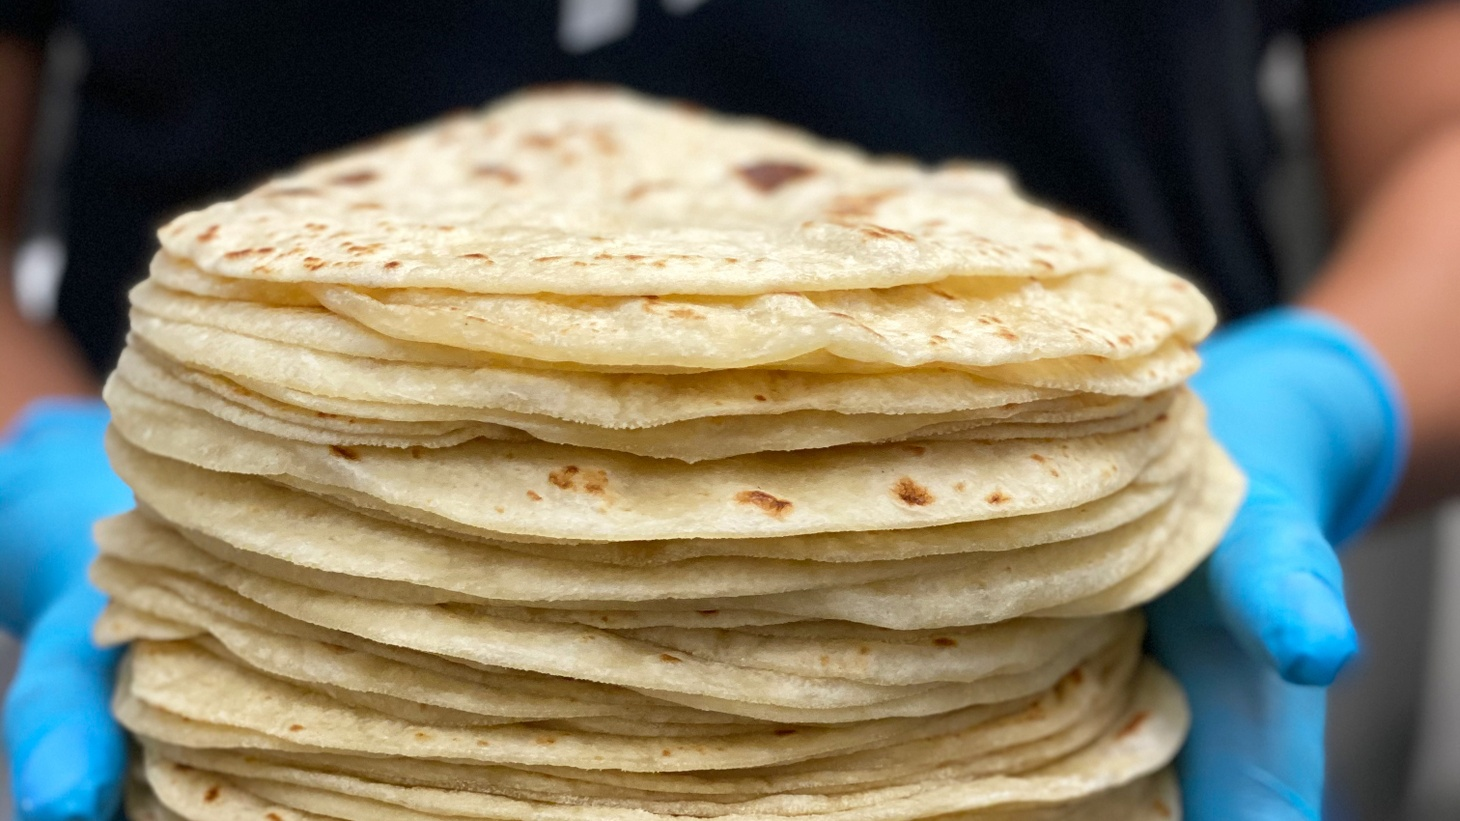 The flour tortillas at HomeState earned this year's Golden Tortilla trophy at this year's Tortilla Tournament.